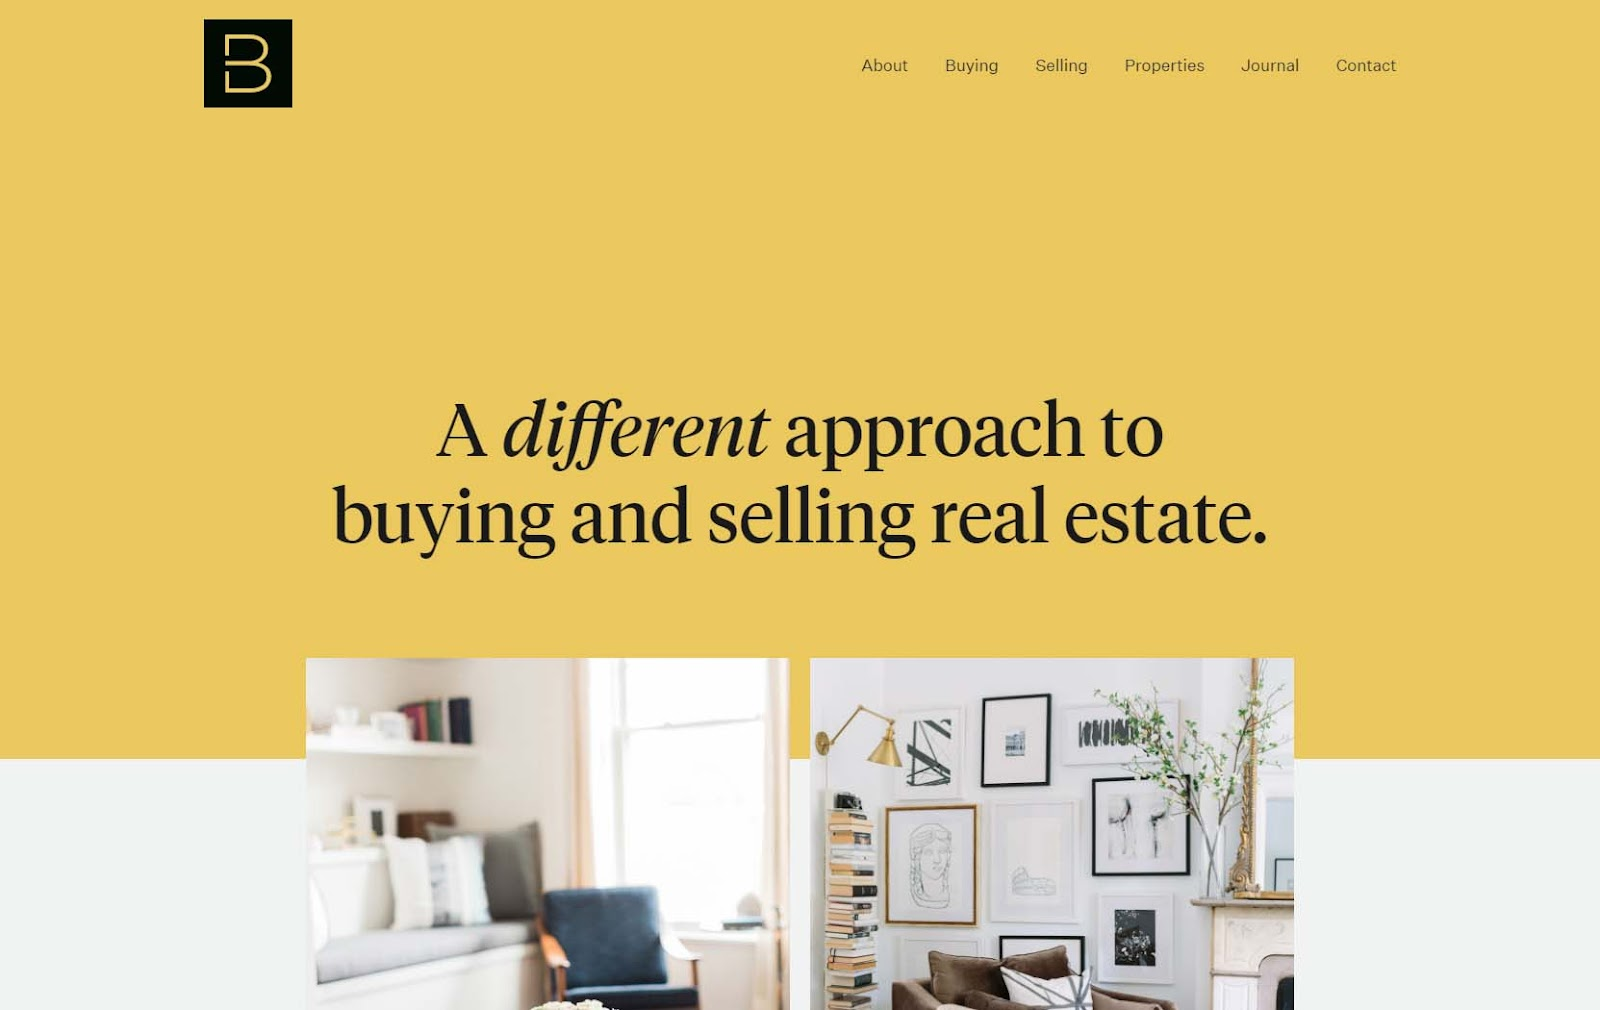 Minimal real estate website homepage with single-worded navigation bar, yellow background, and excellent web copy.